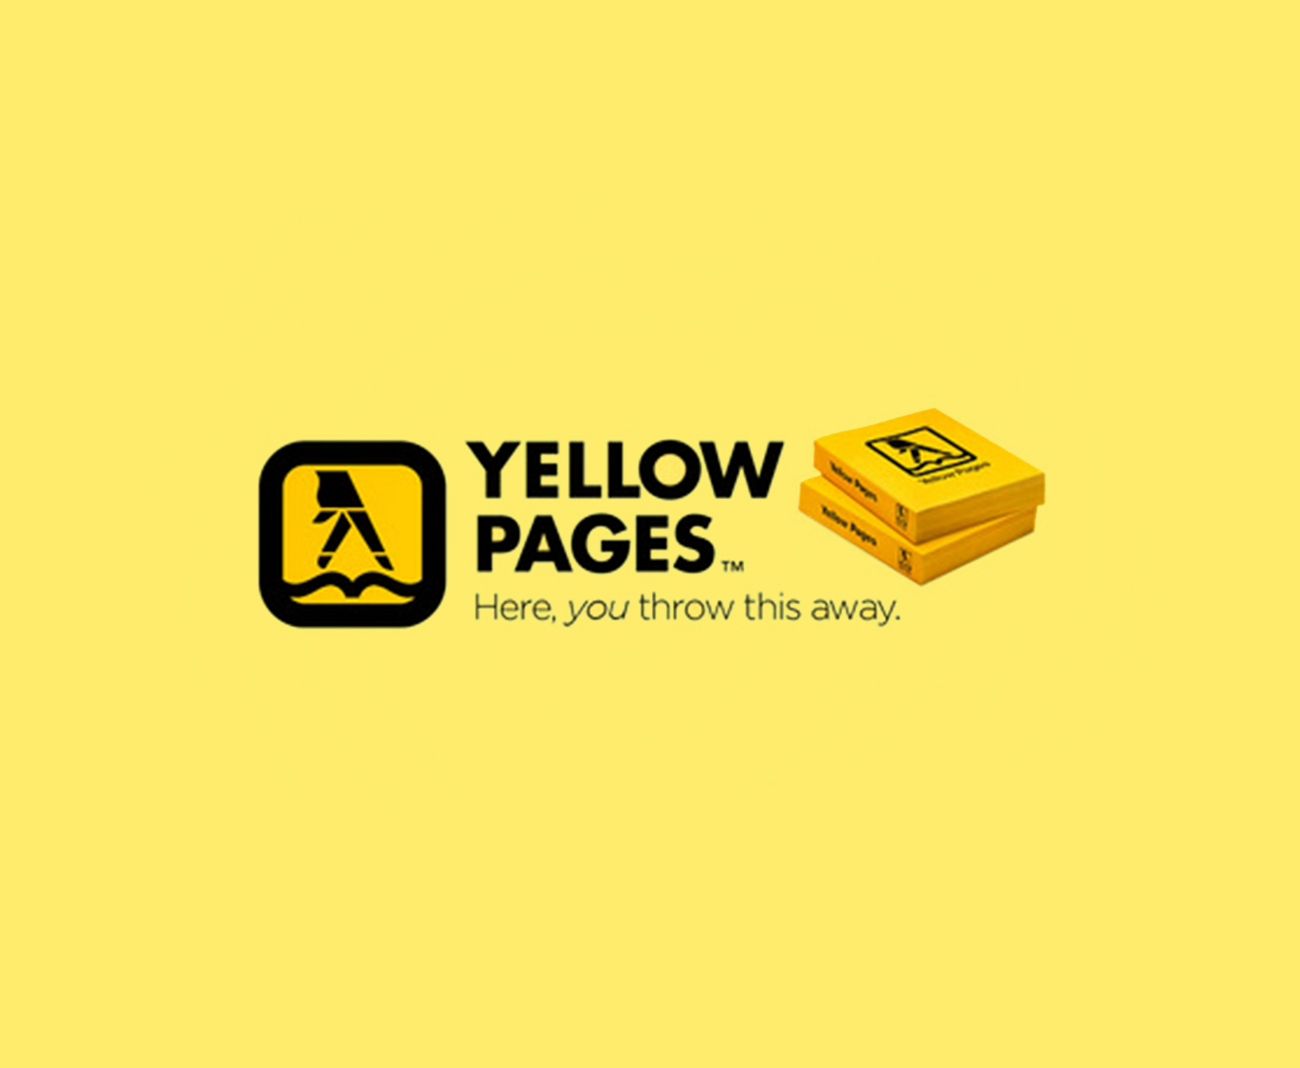 yellow pages throw away